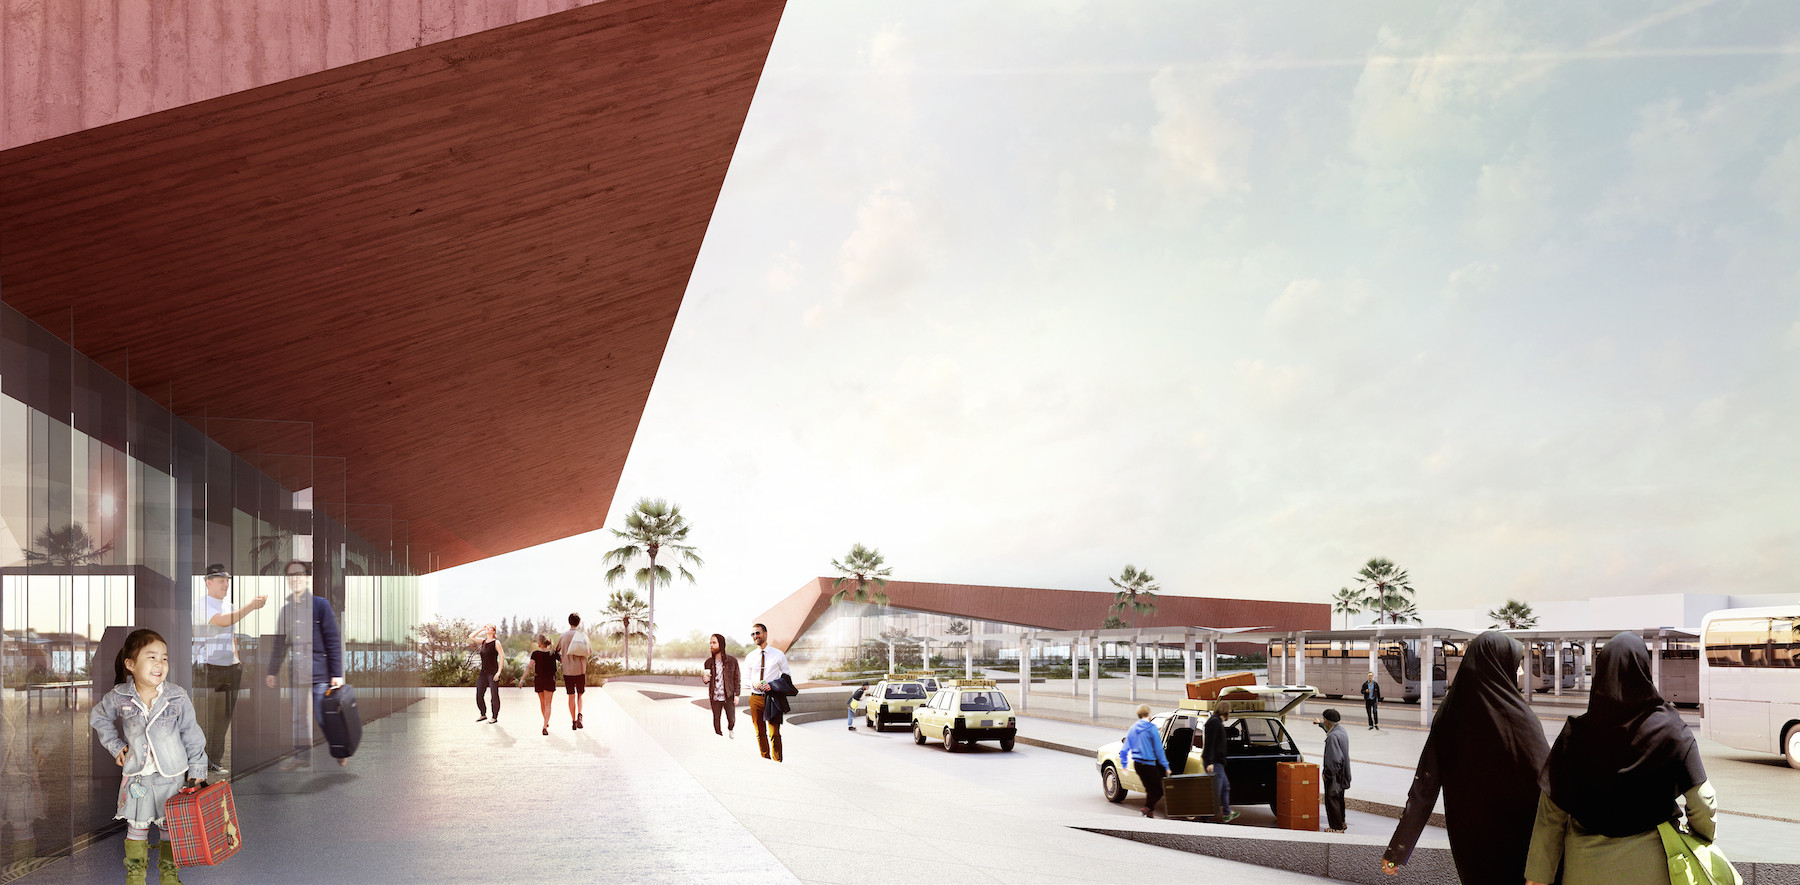 Narrowminded + BOM Propose New Central Bus Station for Marrakech, Courtesy of Narrowminded + BOM Architects